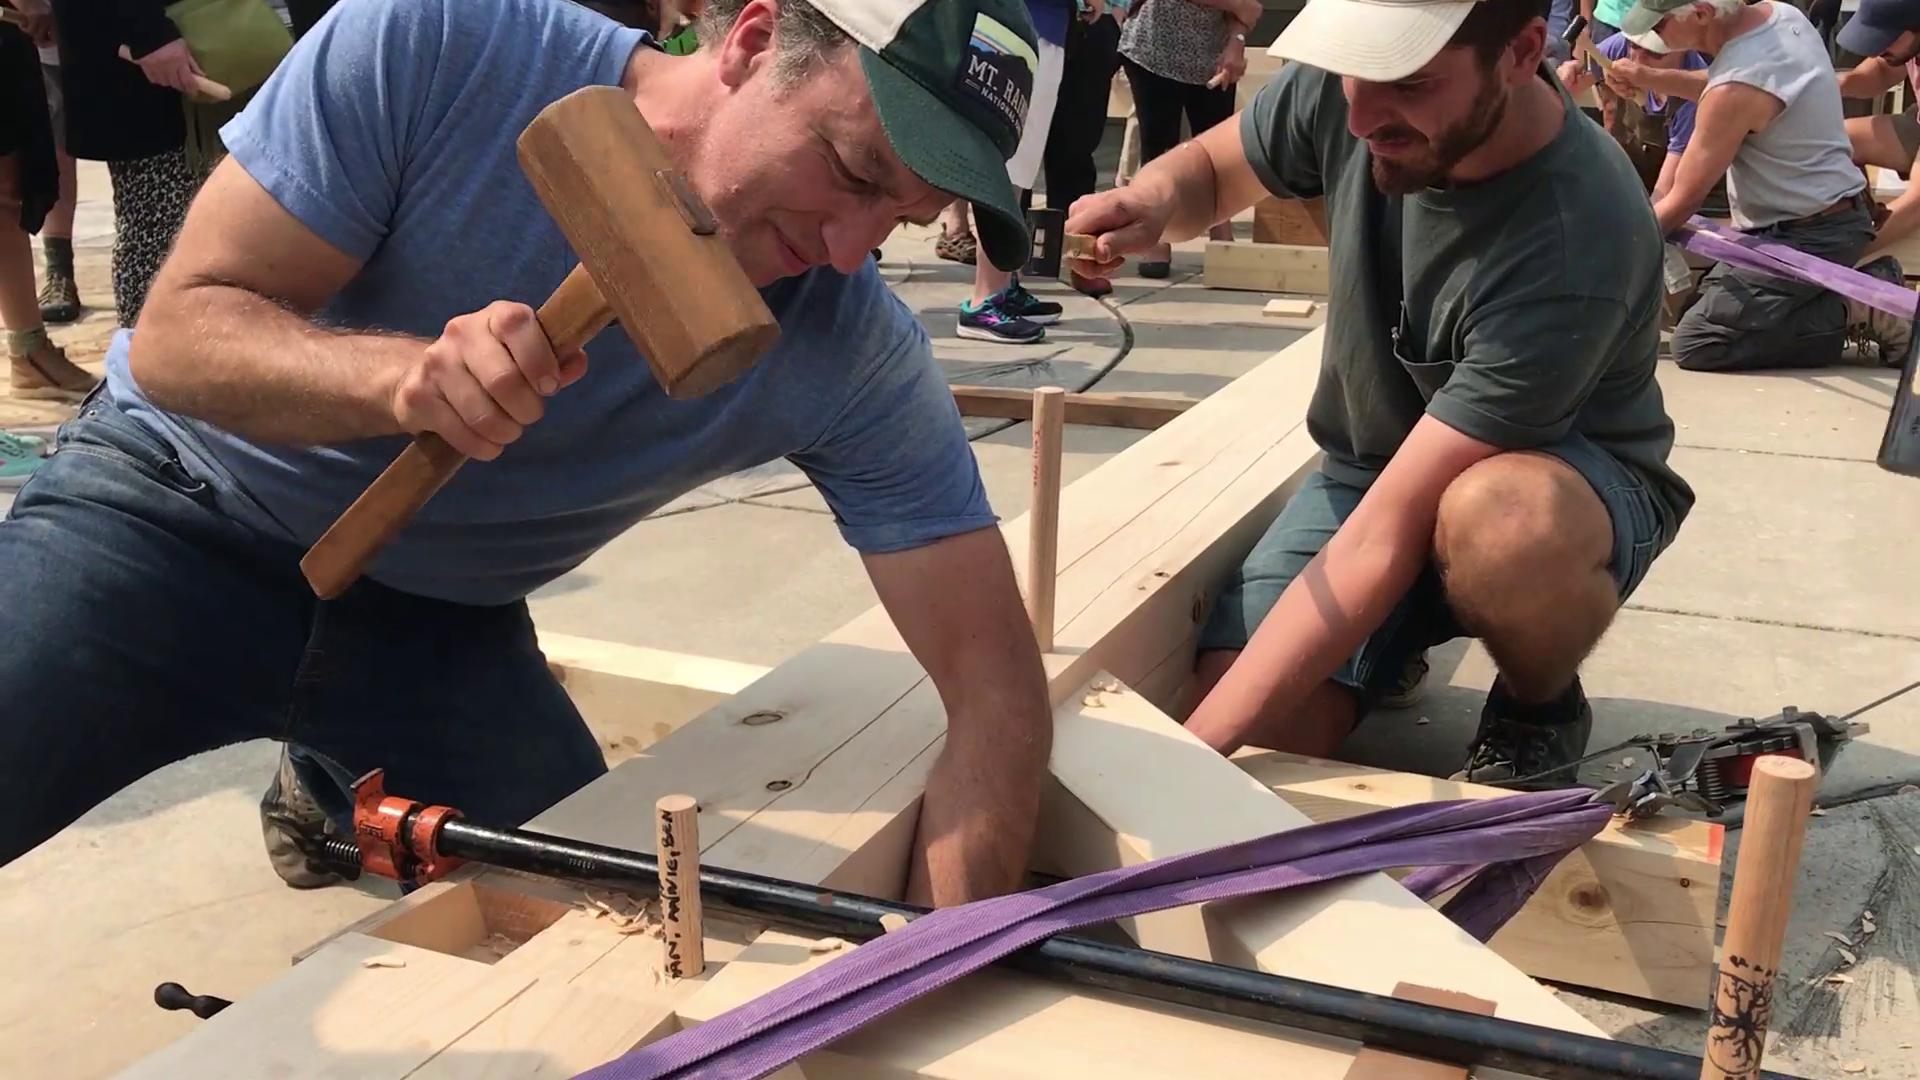 Assembling the sukkah. Video by Jamie Lusch / Daily TidingsThumbnail